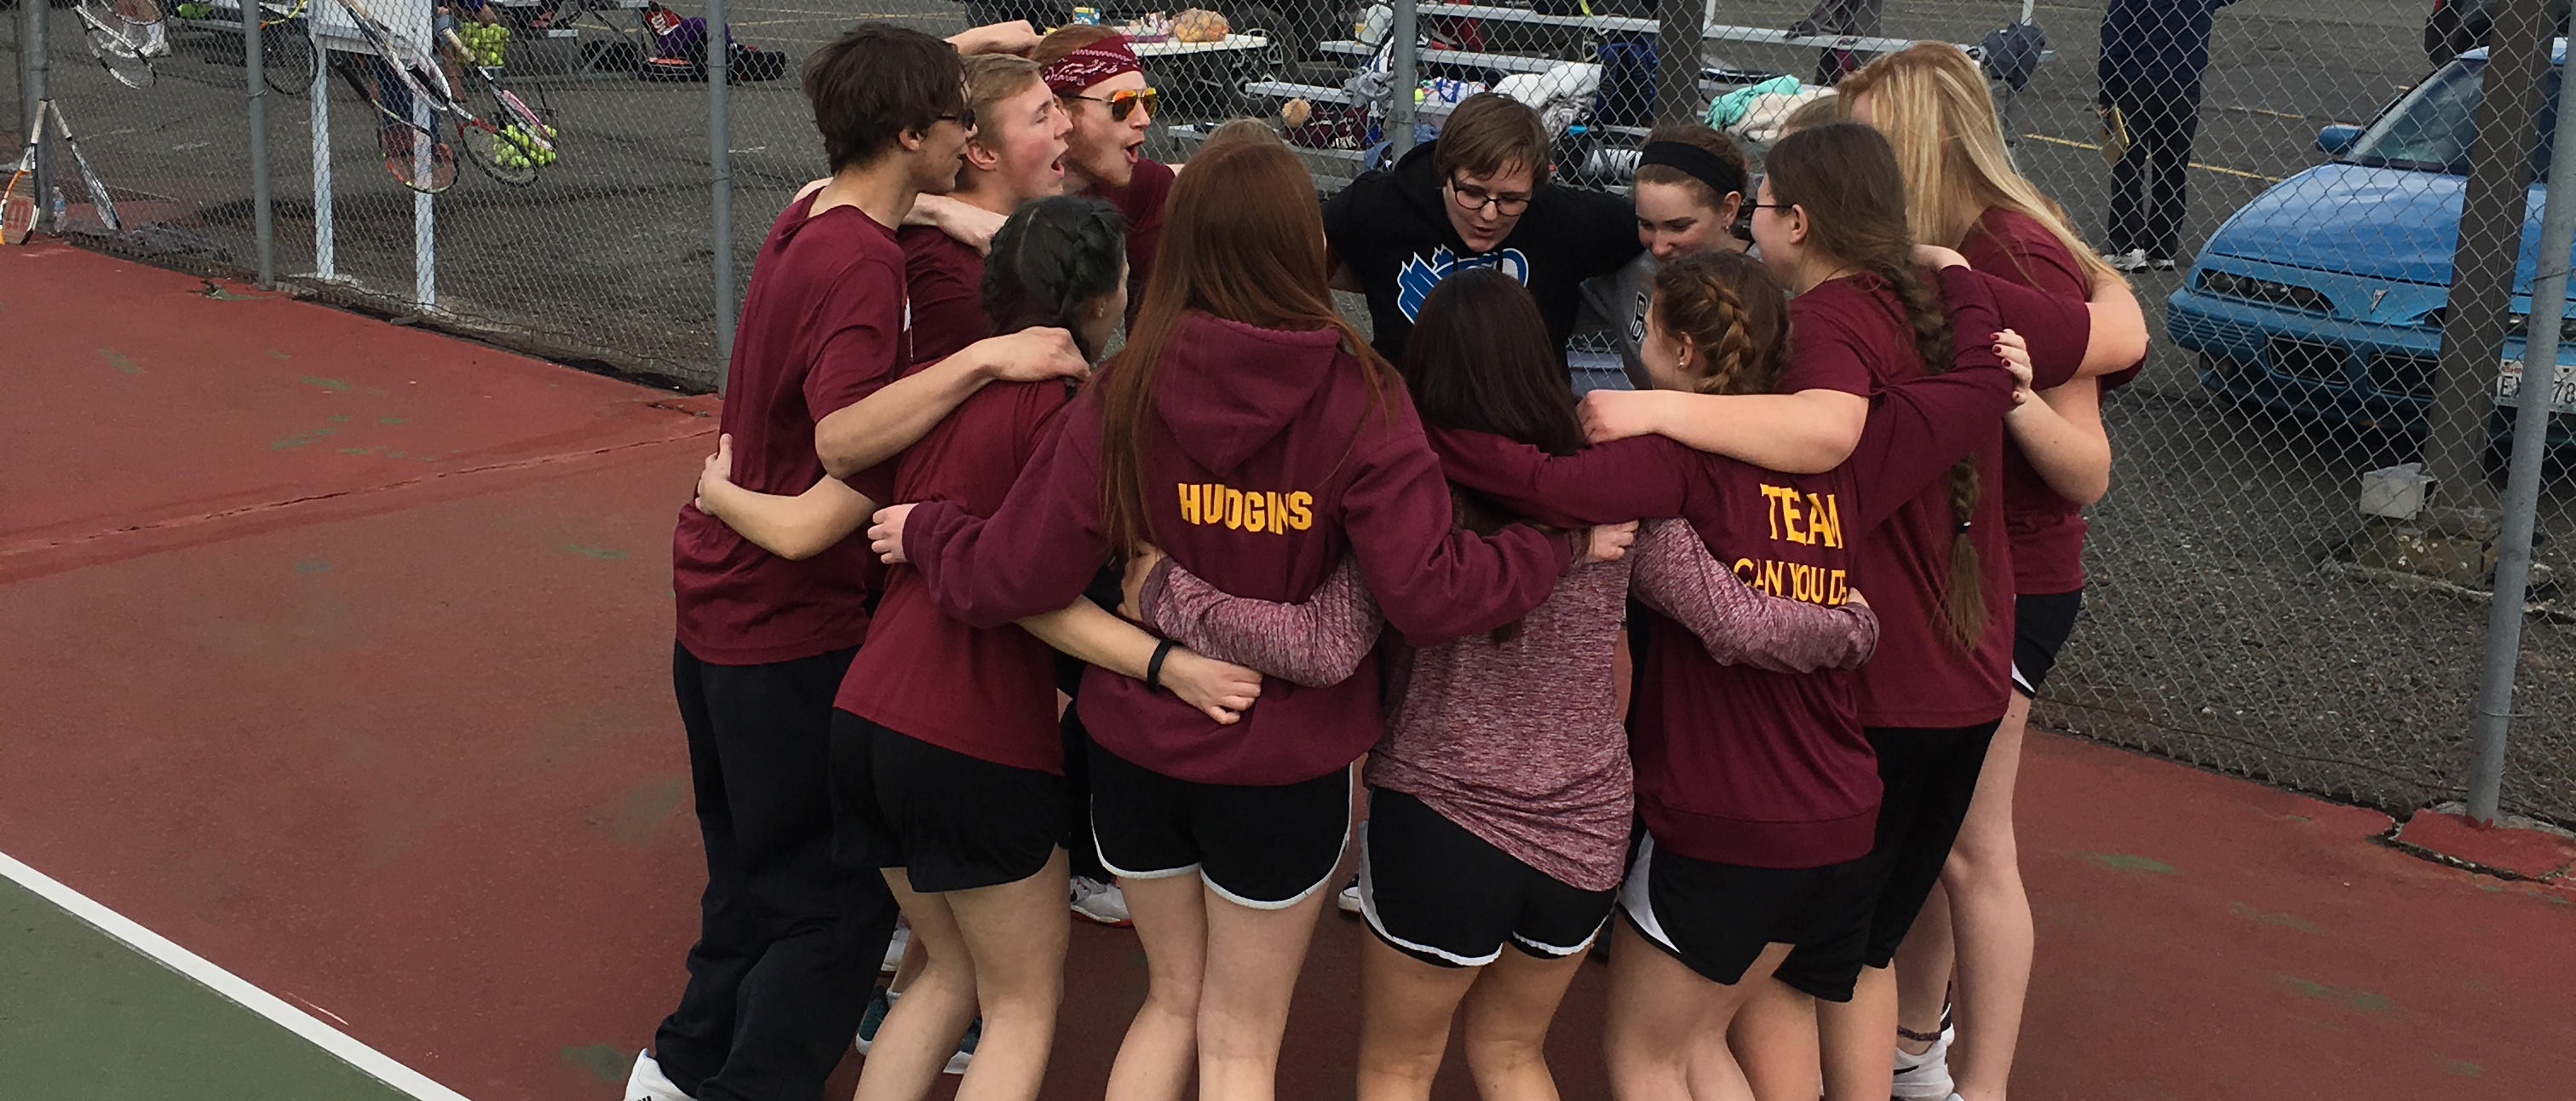 CERHS tennis team huddles up